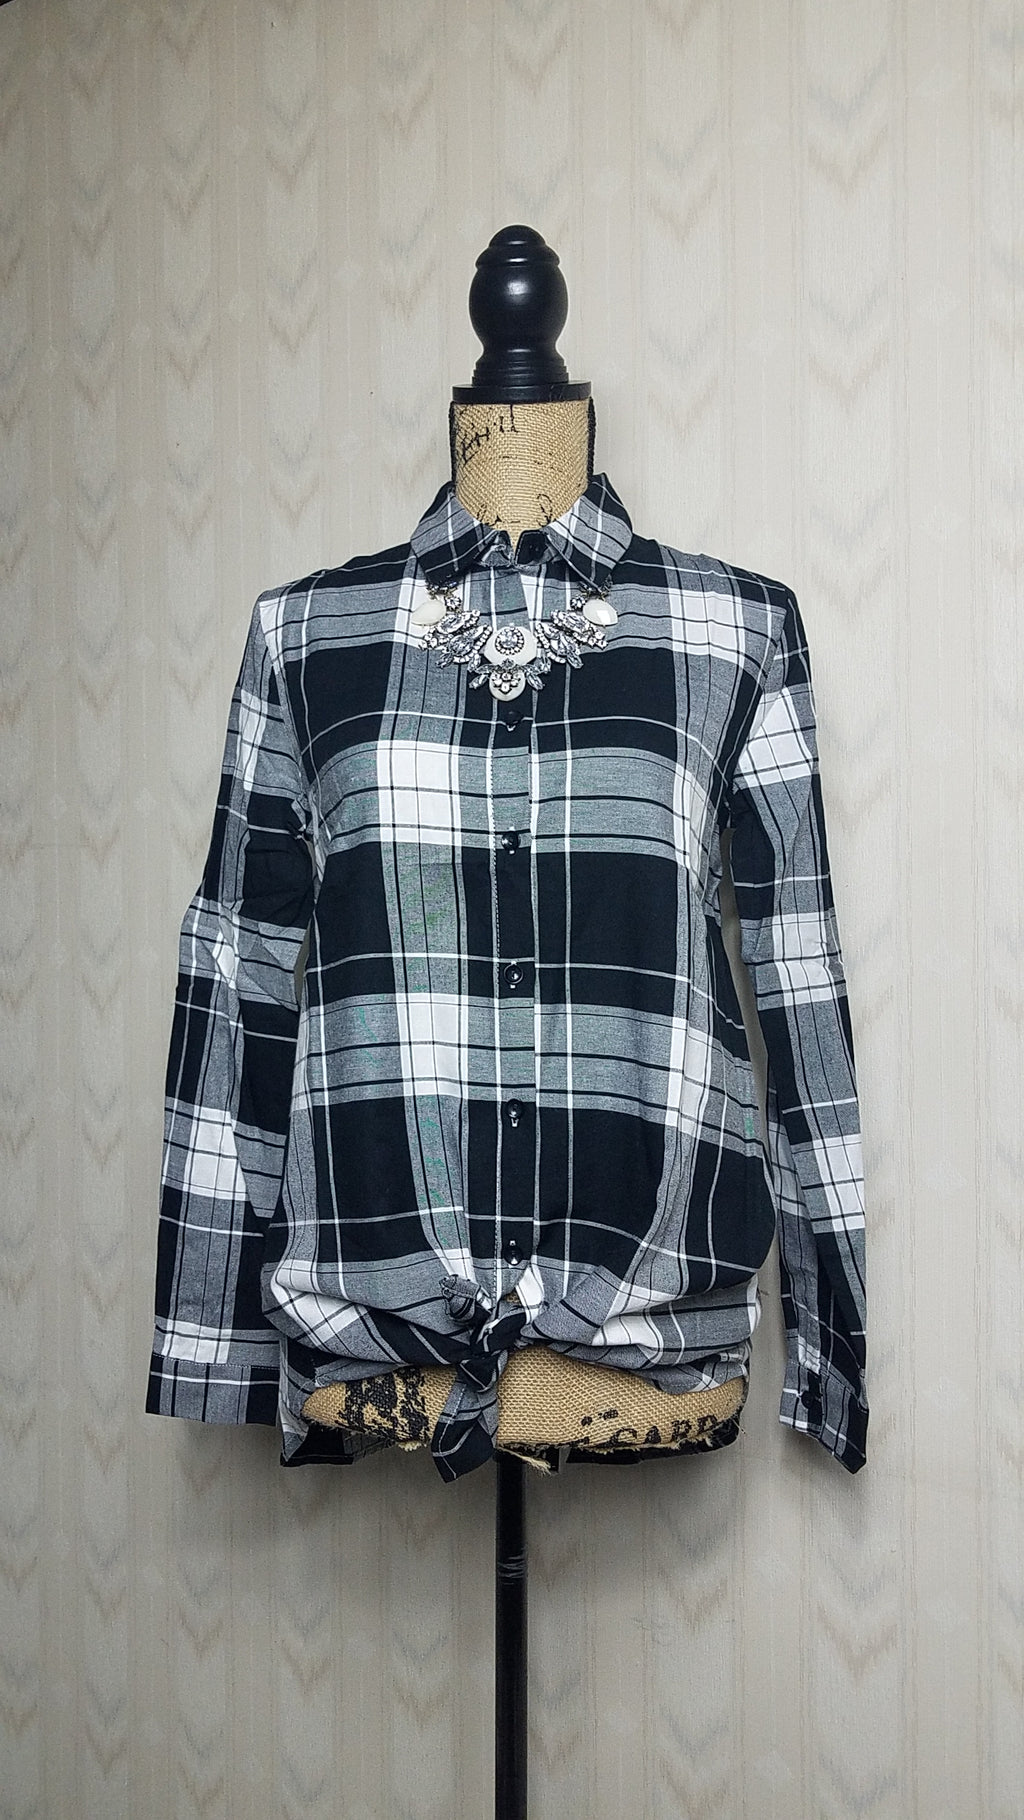 Ashley Black and White Plaid Button-Up Top